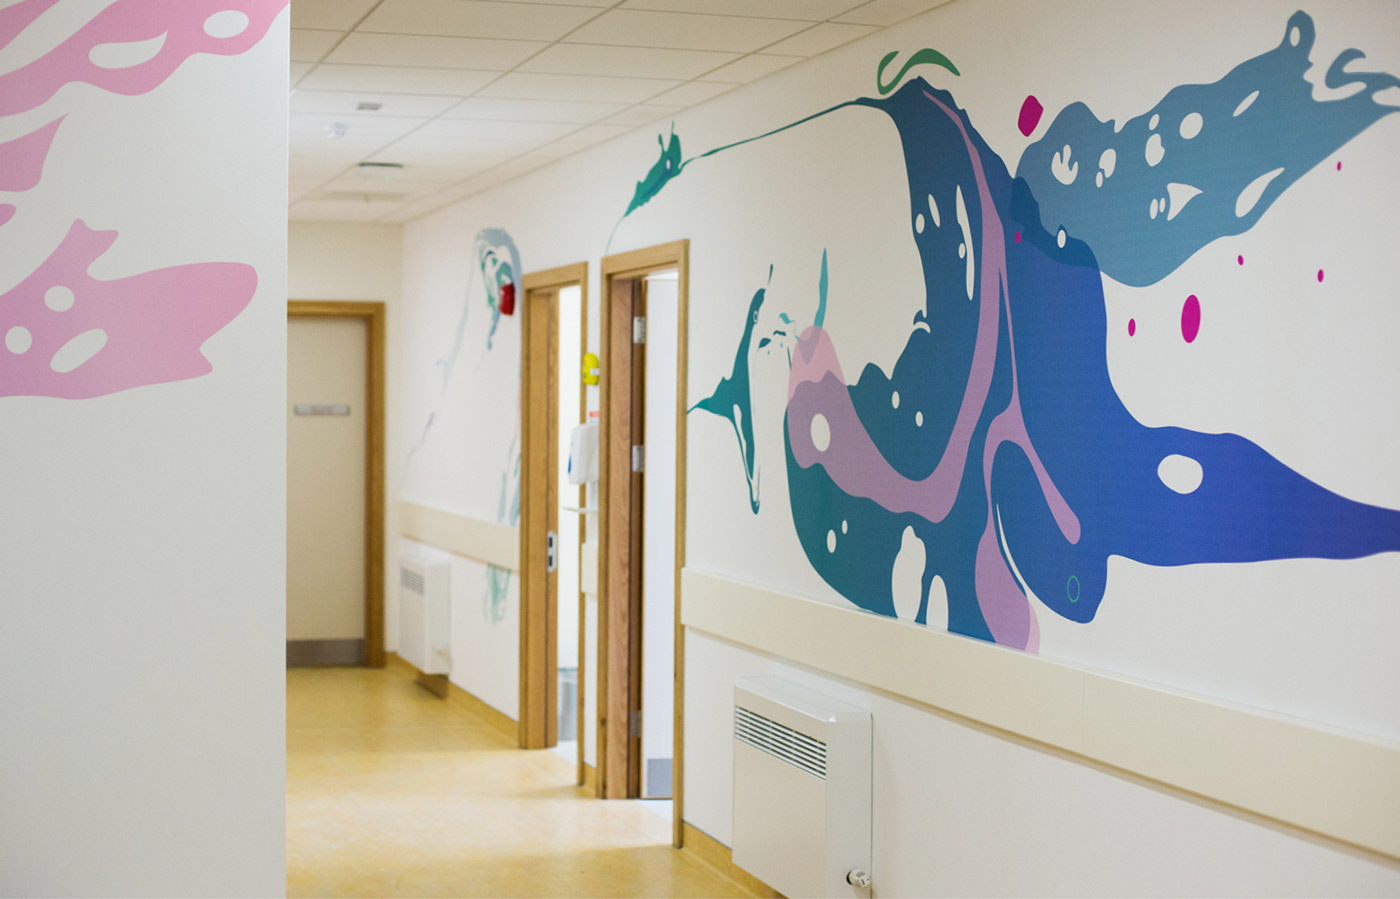 University Hospital Limerick spatial design in cystic fibrosis unit